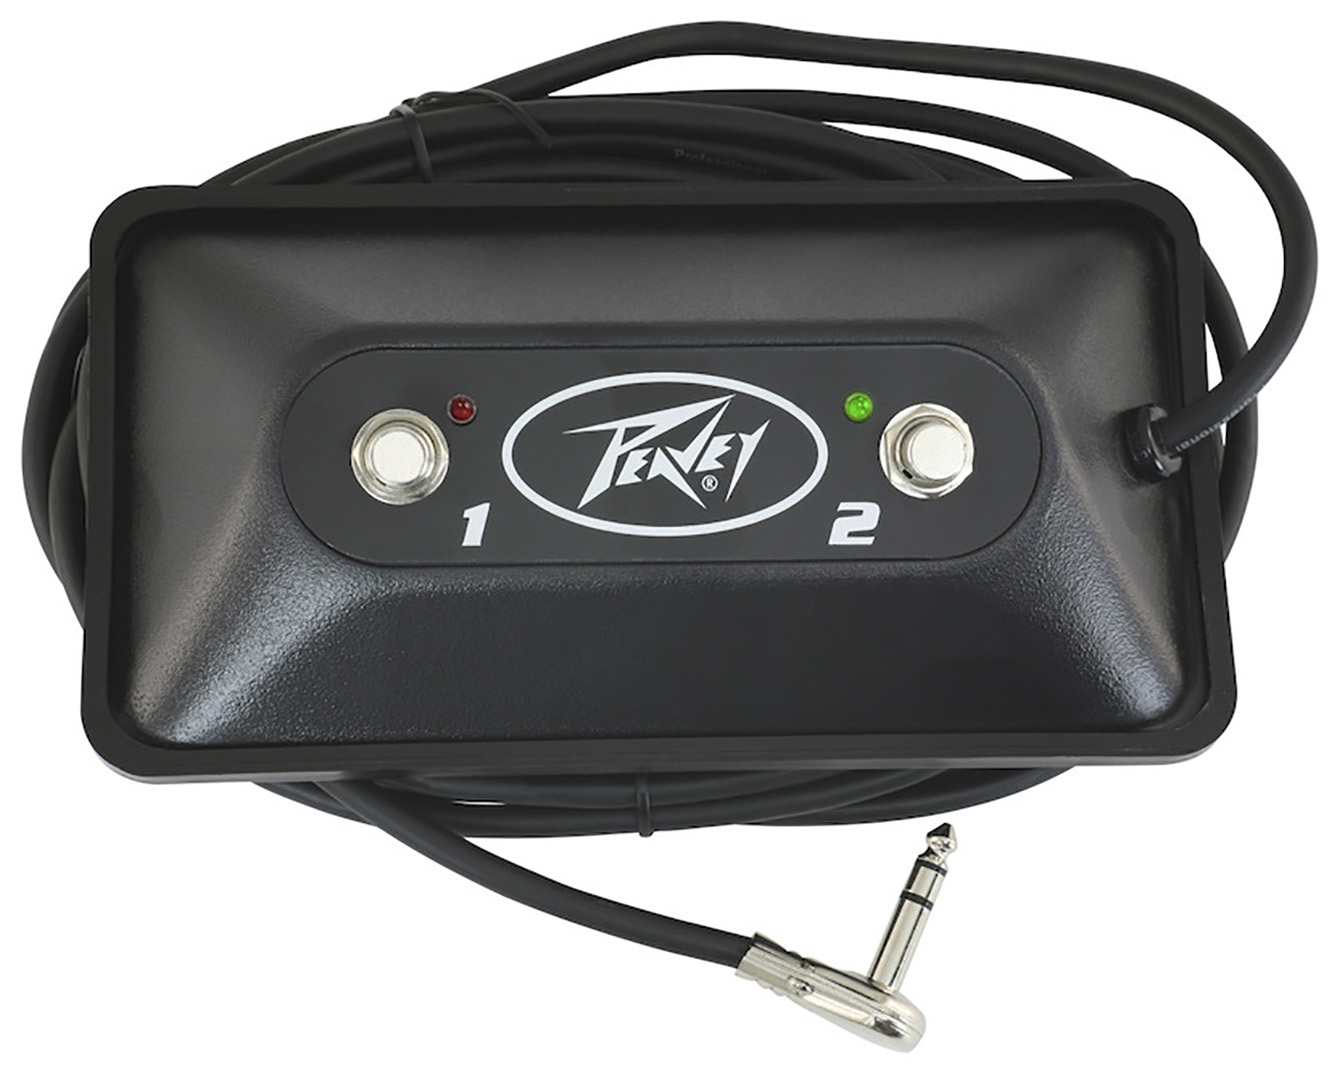 Image of   PEAVEY P2 LED Multi Fodkontakt